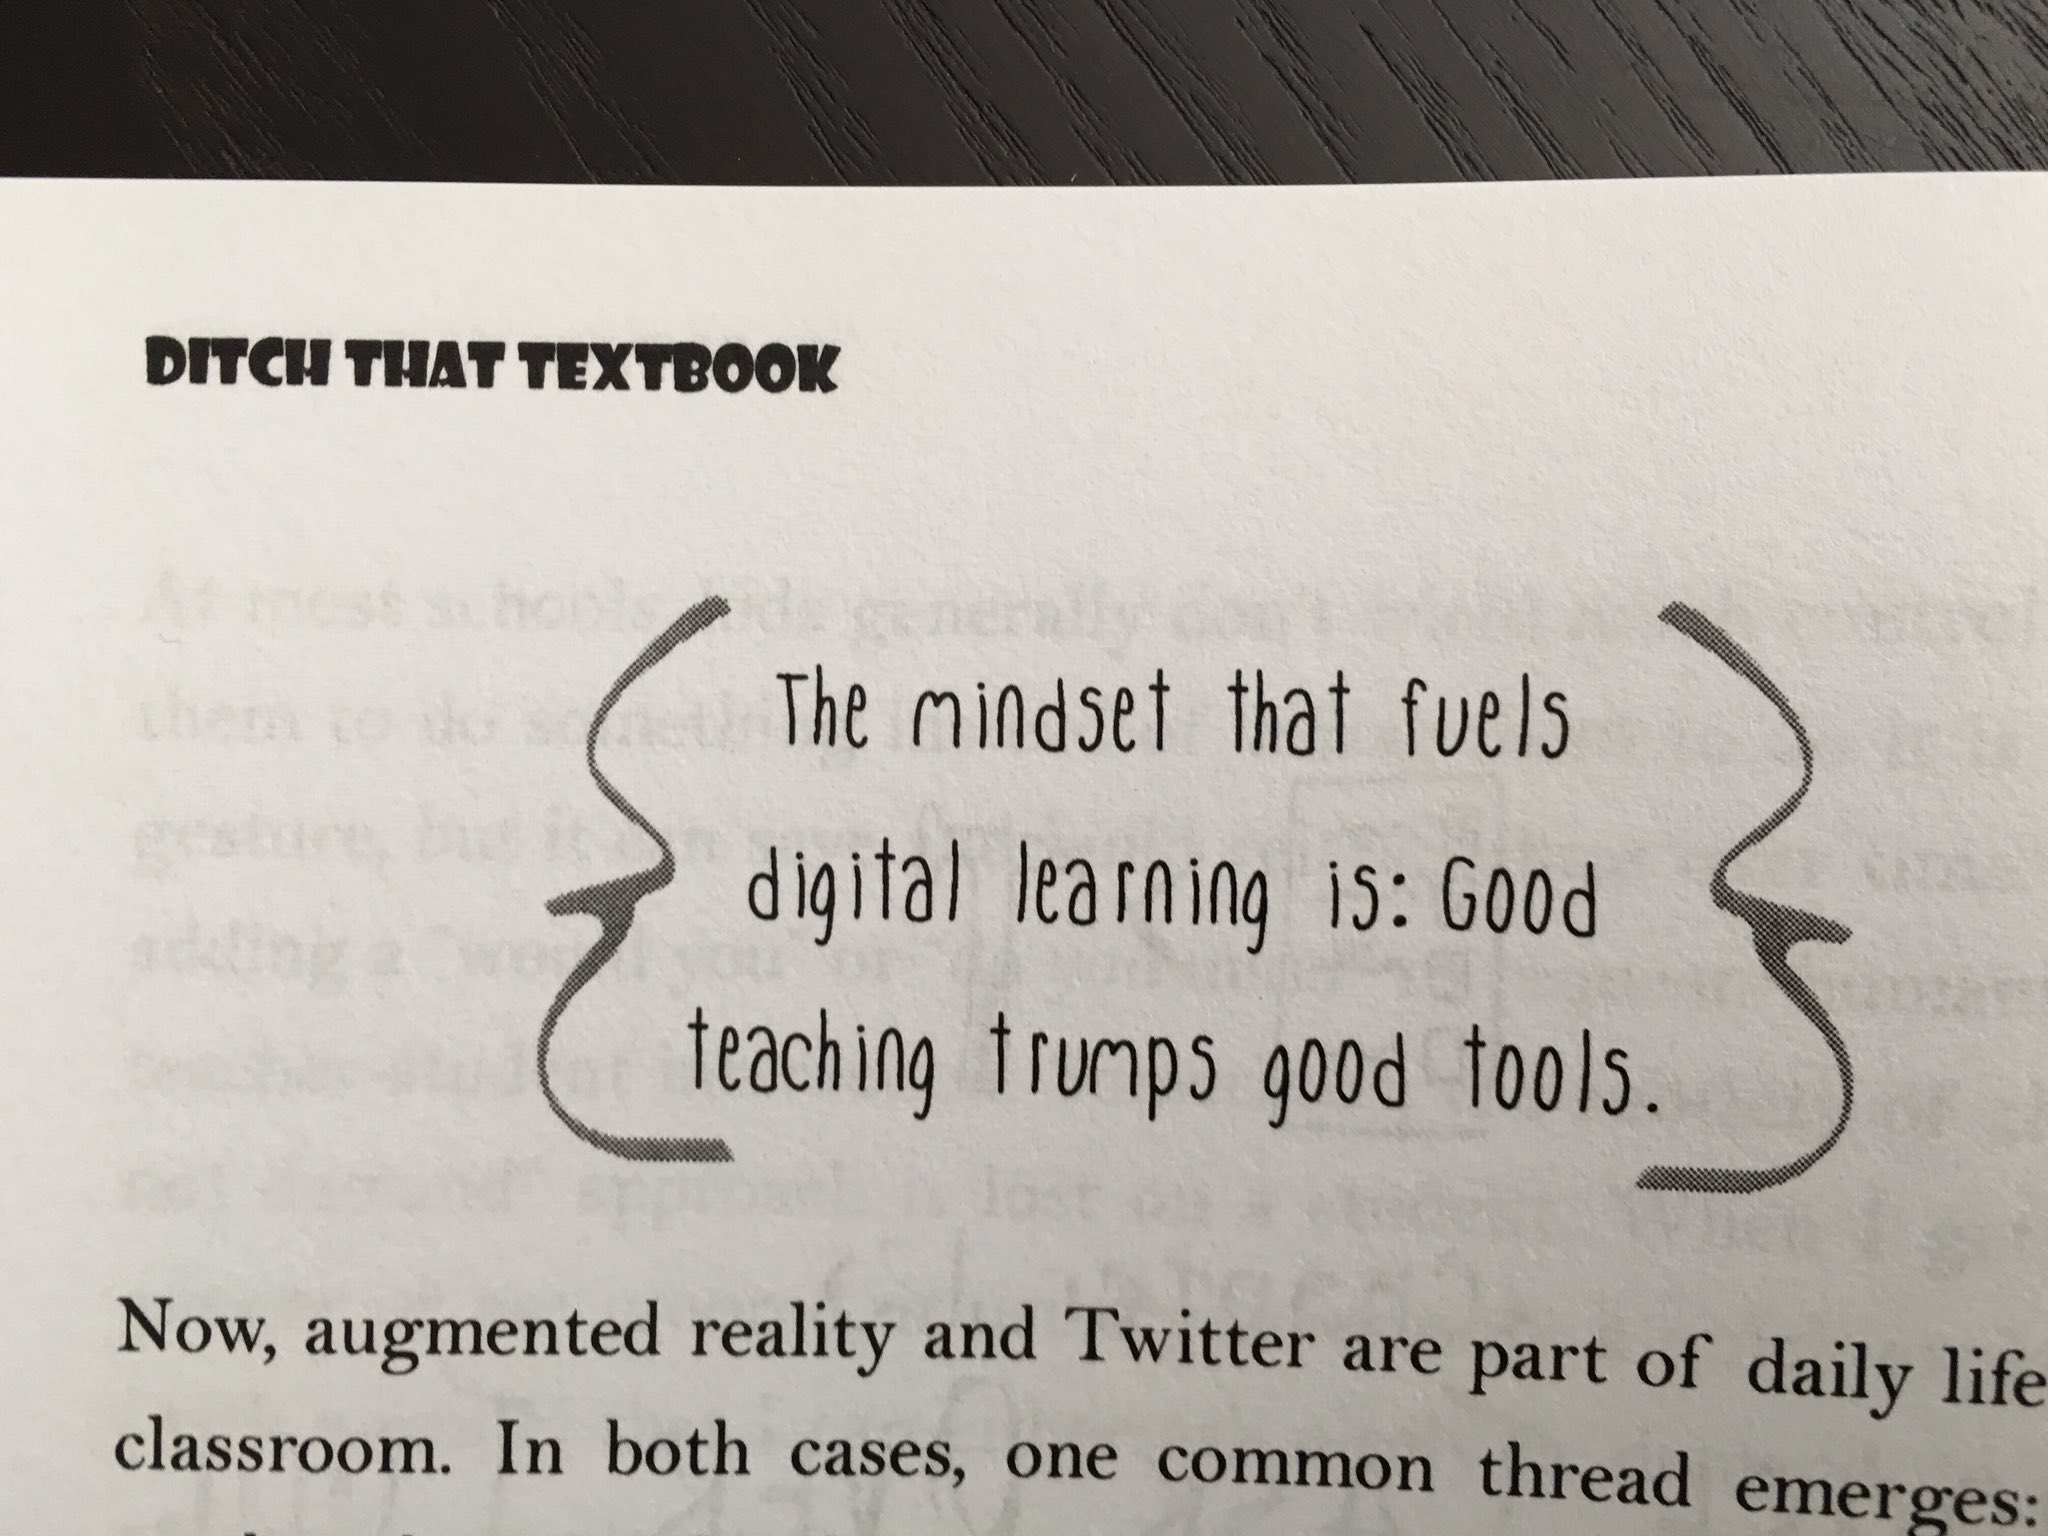 A5 When I hear 21st Century Classroom I always think of this @jmattmiller quote in #DitchBook #satchatwc #tlap https://t.co/S3MGYXpkXD